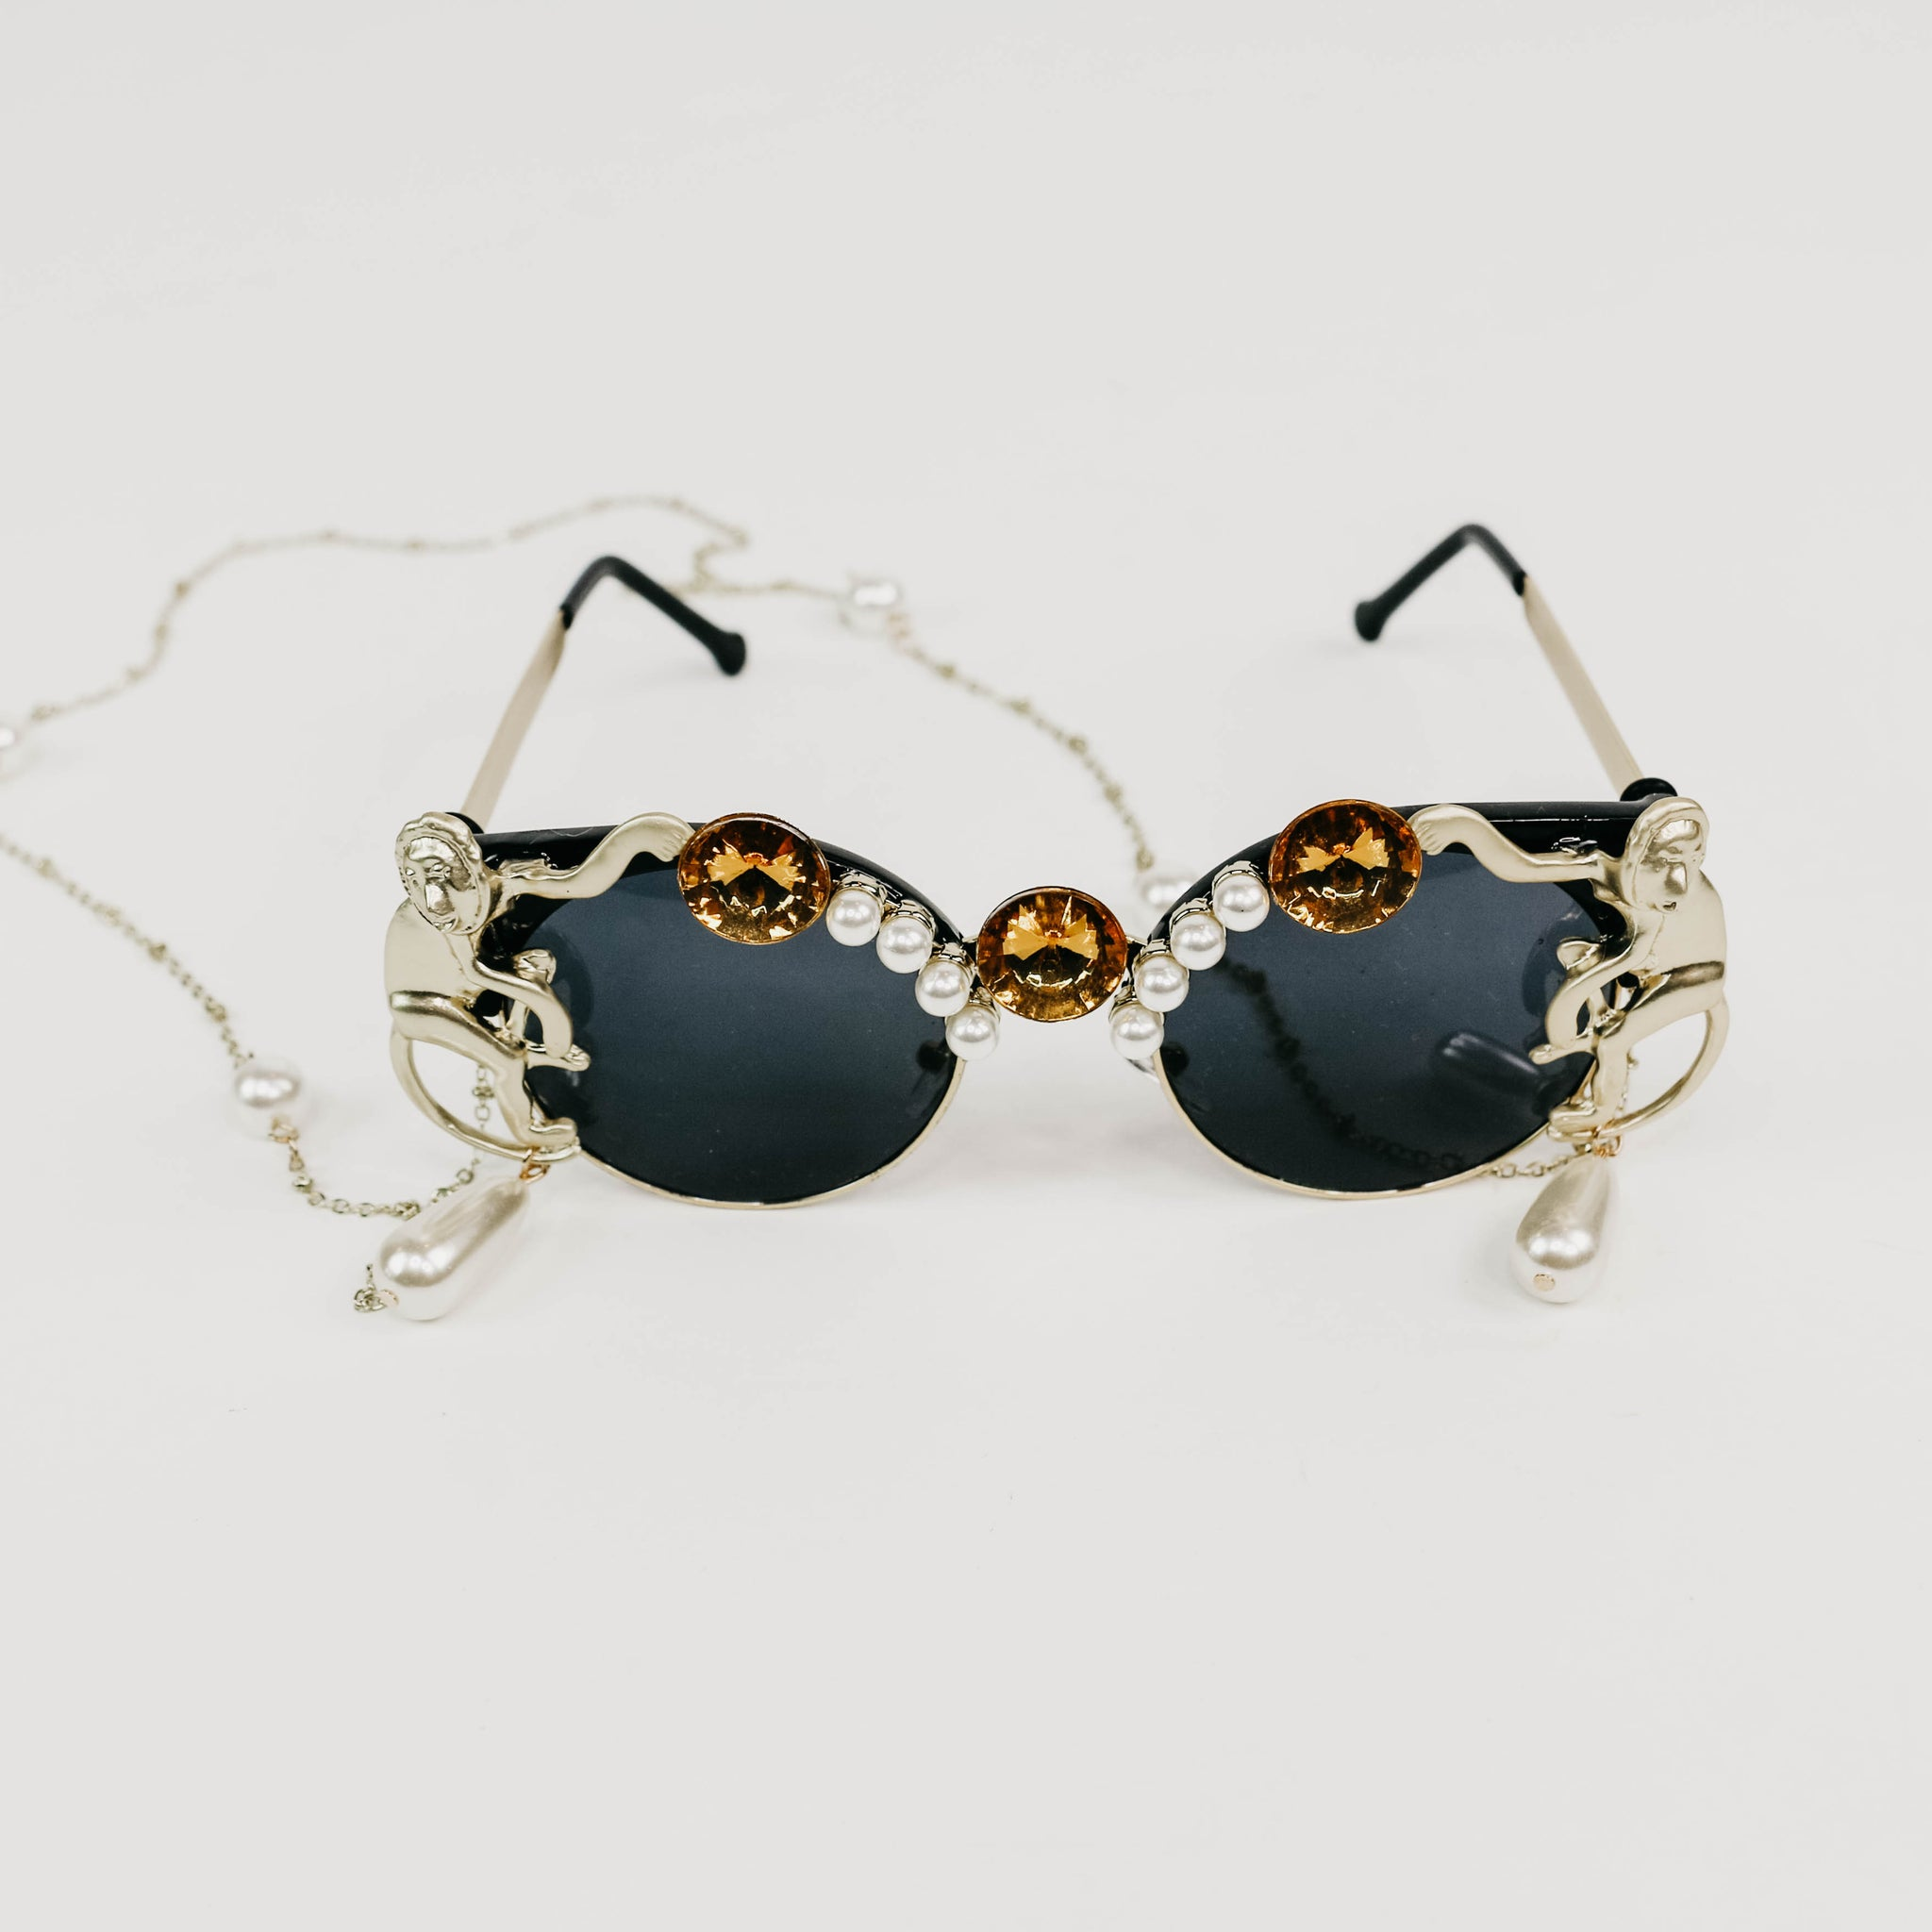 Handmade Wonderland Sunglasses